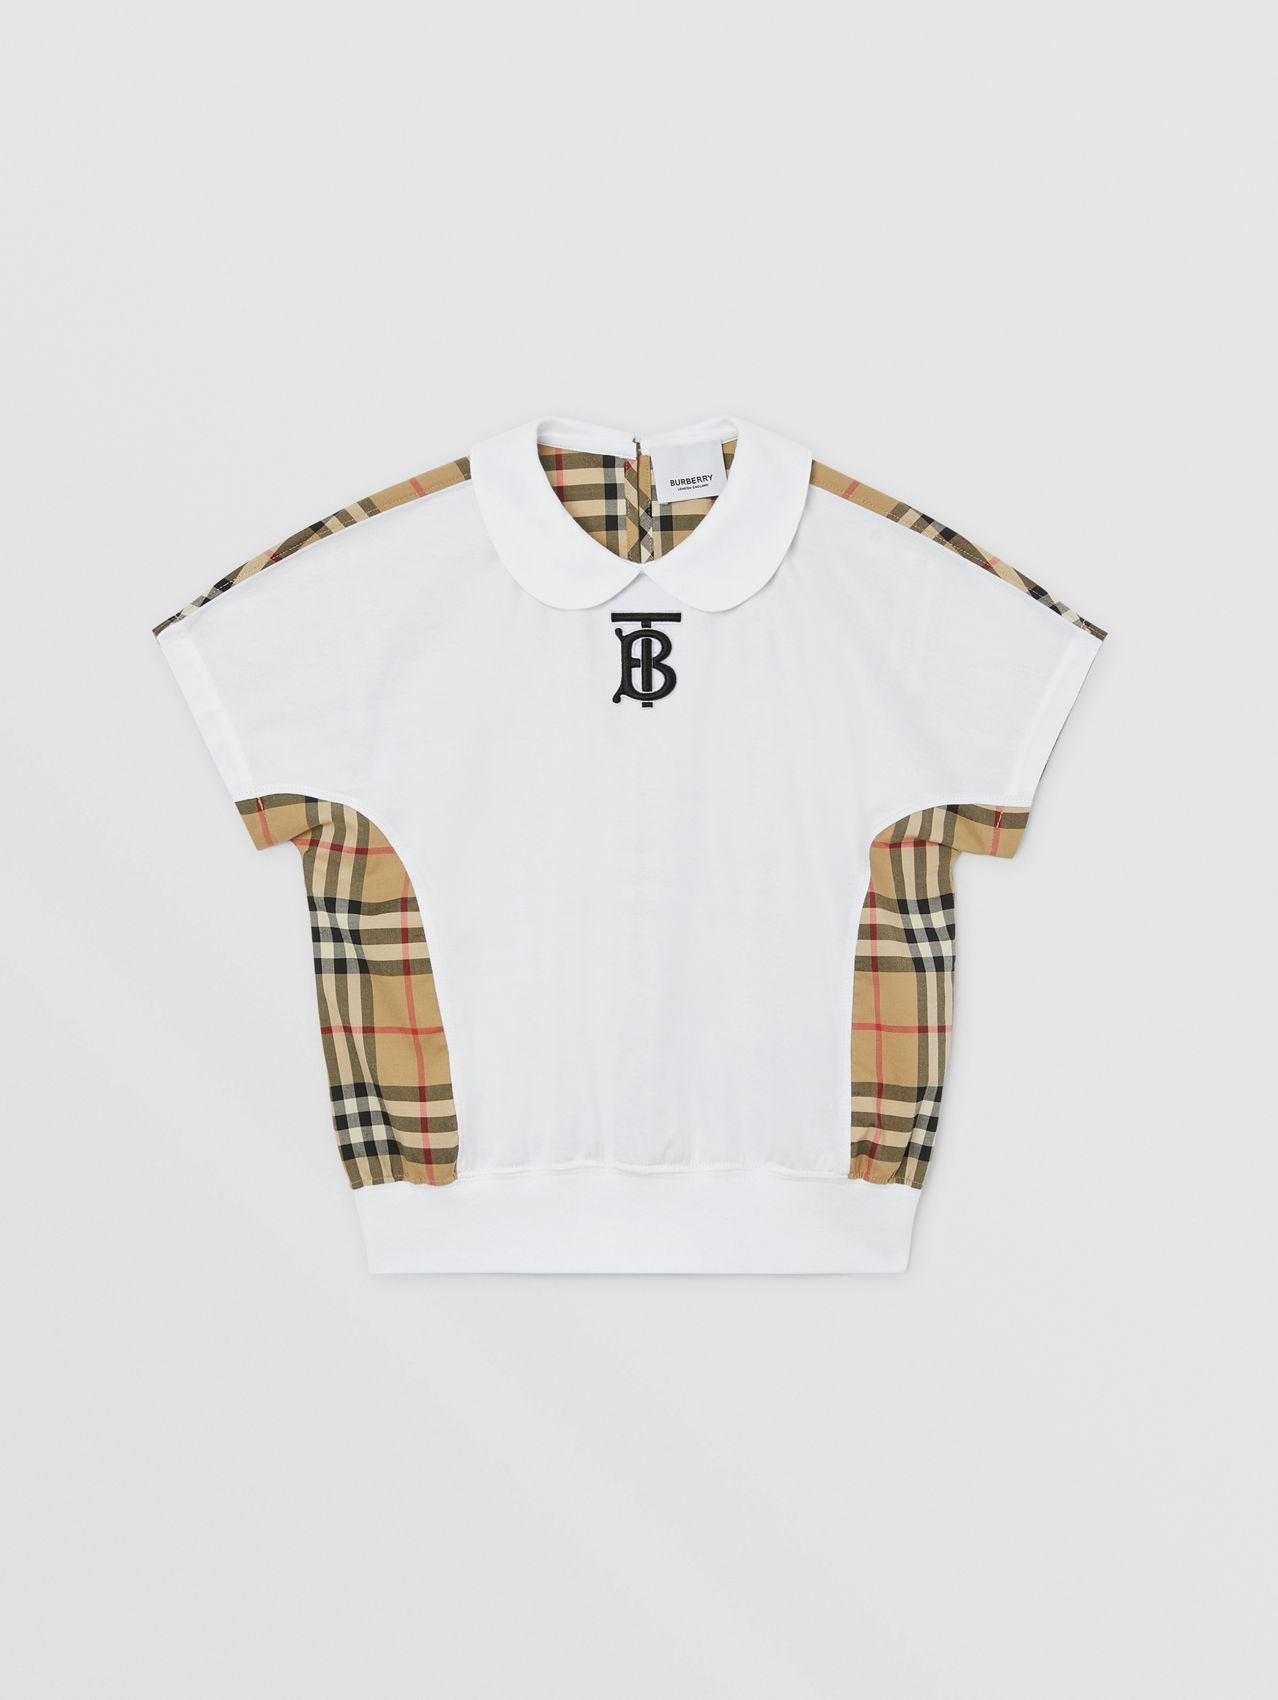 Monogram Motif Vintage Check Panel Cotton T-shirt in Archive Beige